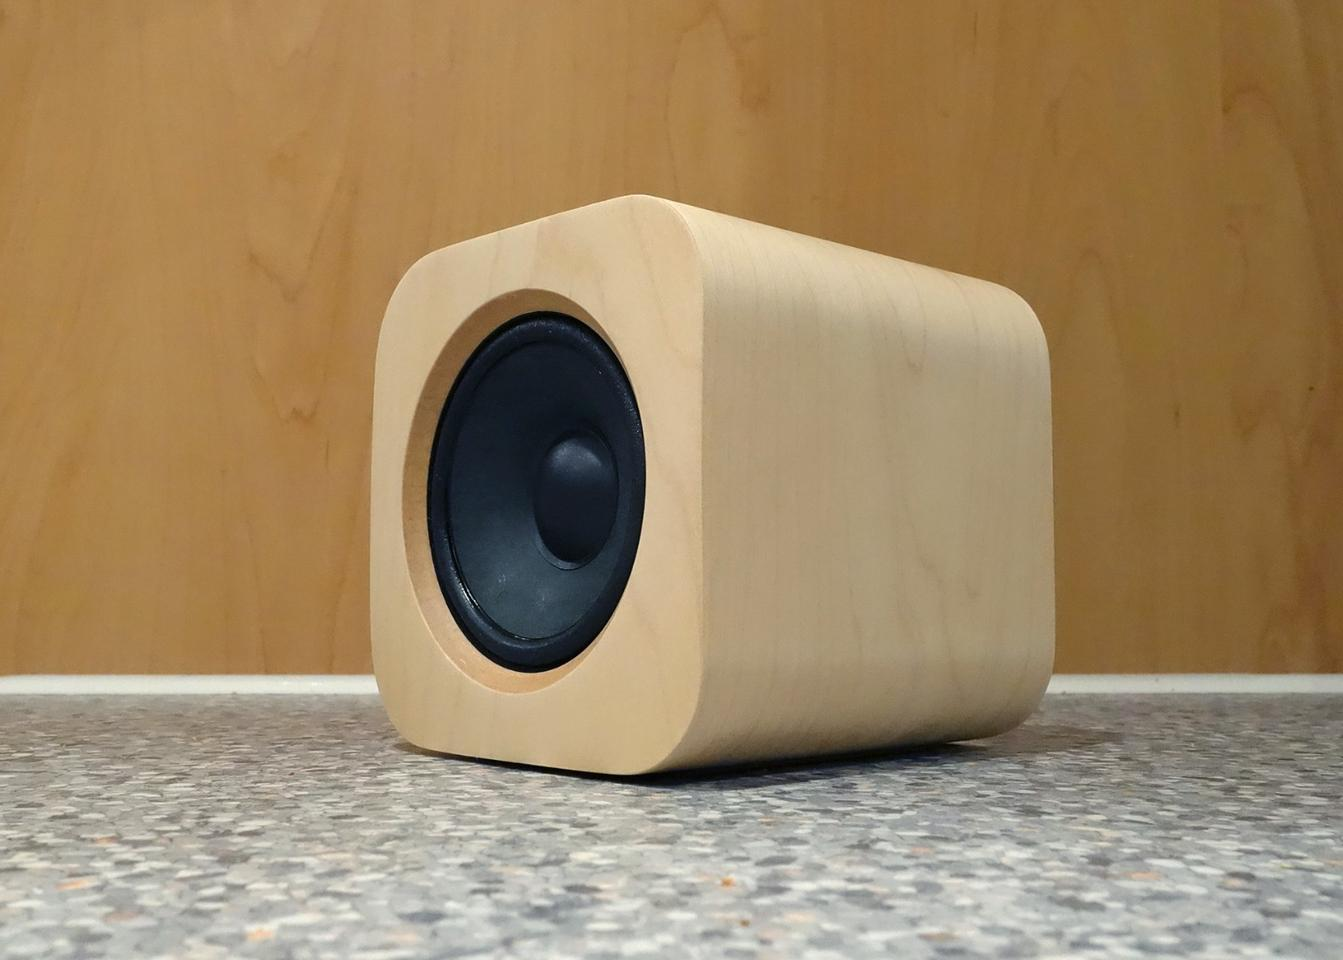 The Sugr Cube carries a hefty audio punch in a small form factor